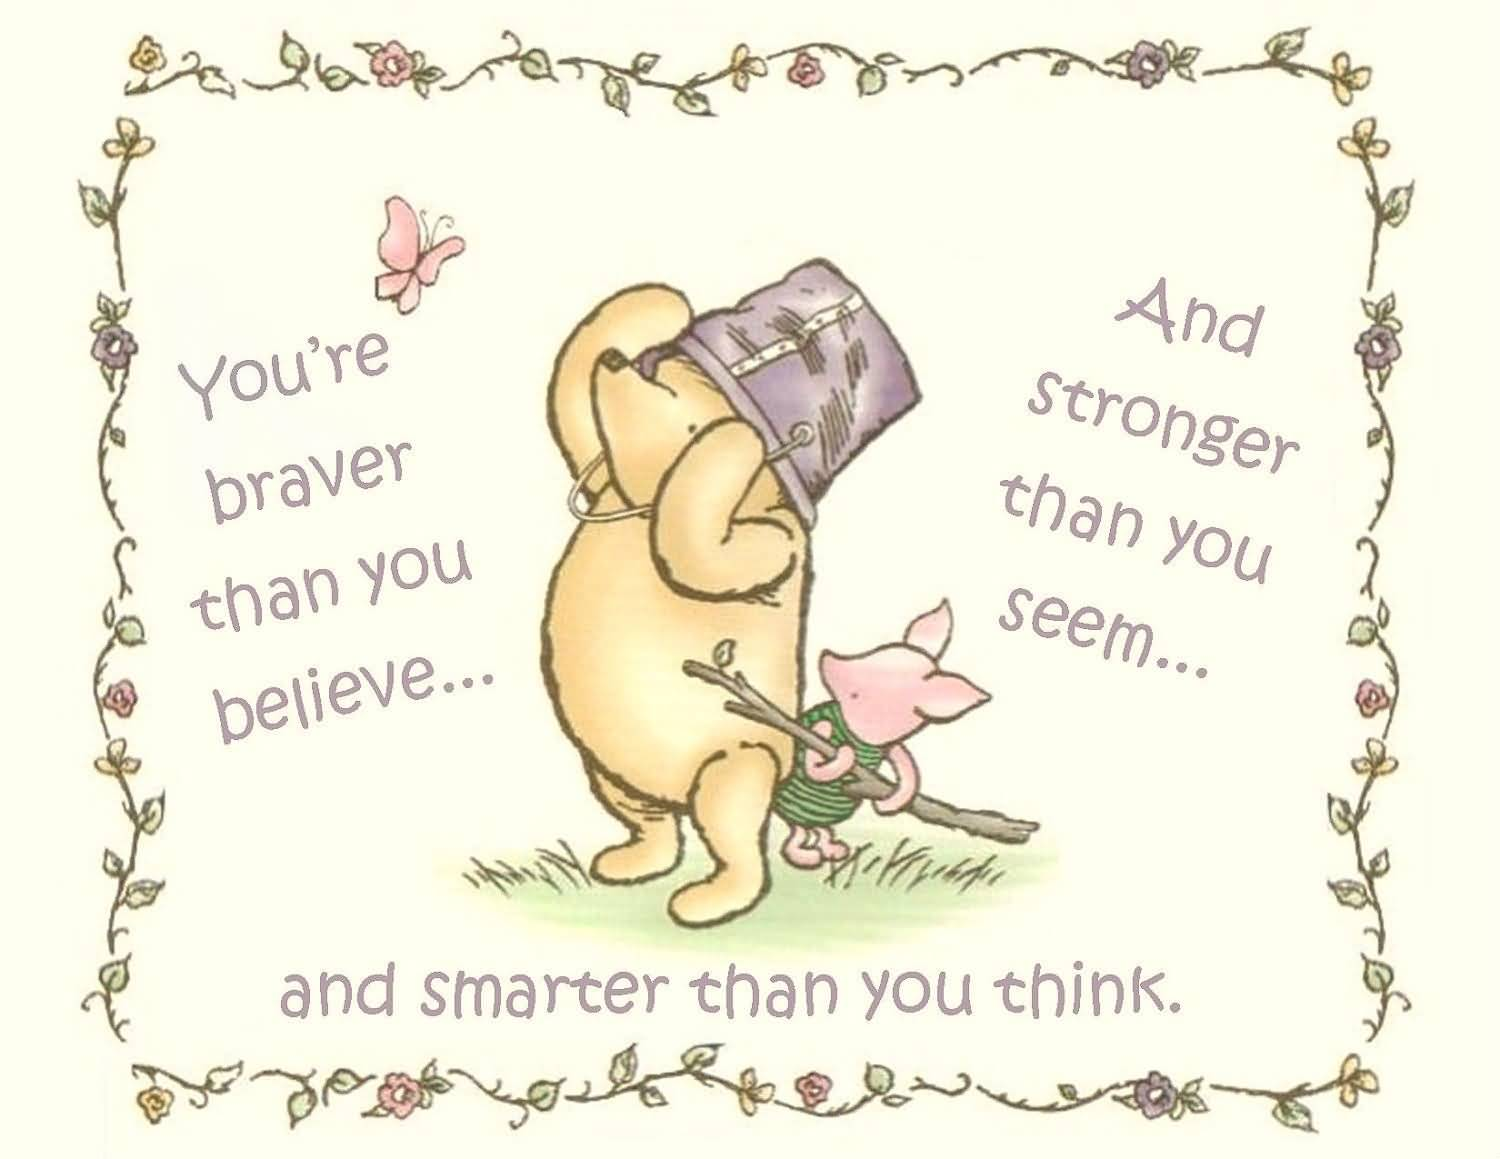 Pooh Love Quotes Inspiration Pooh Love Quotes 02  Quotesbae